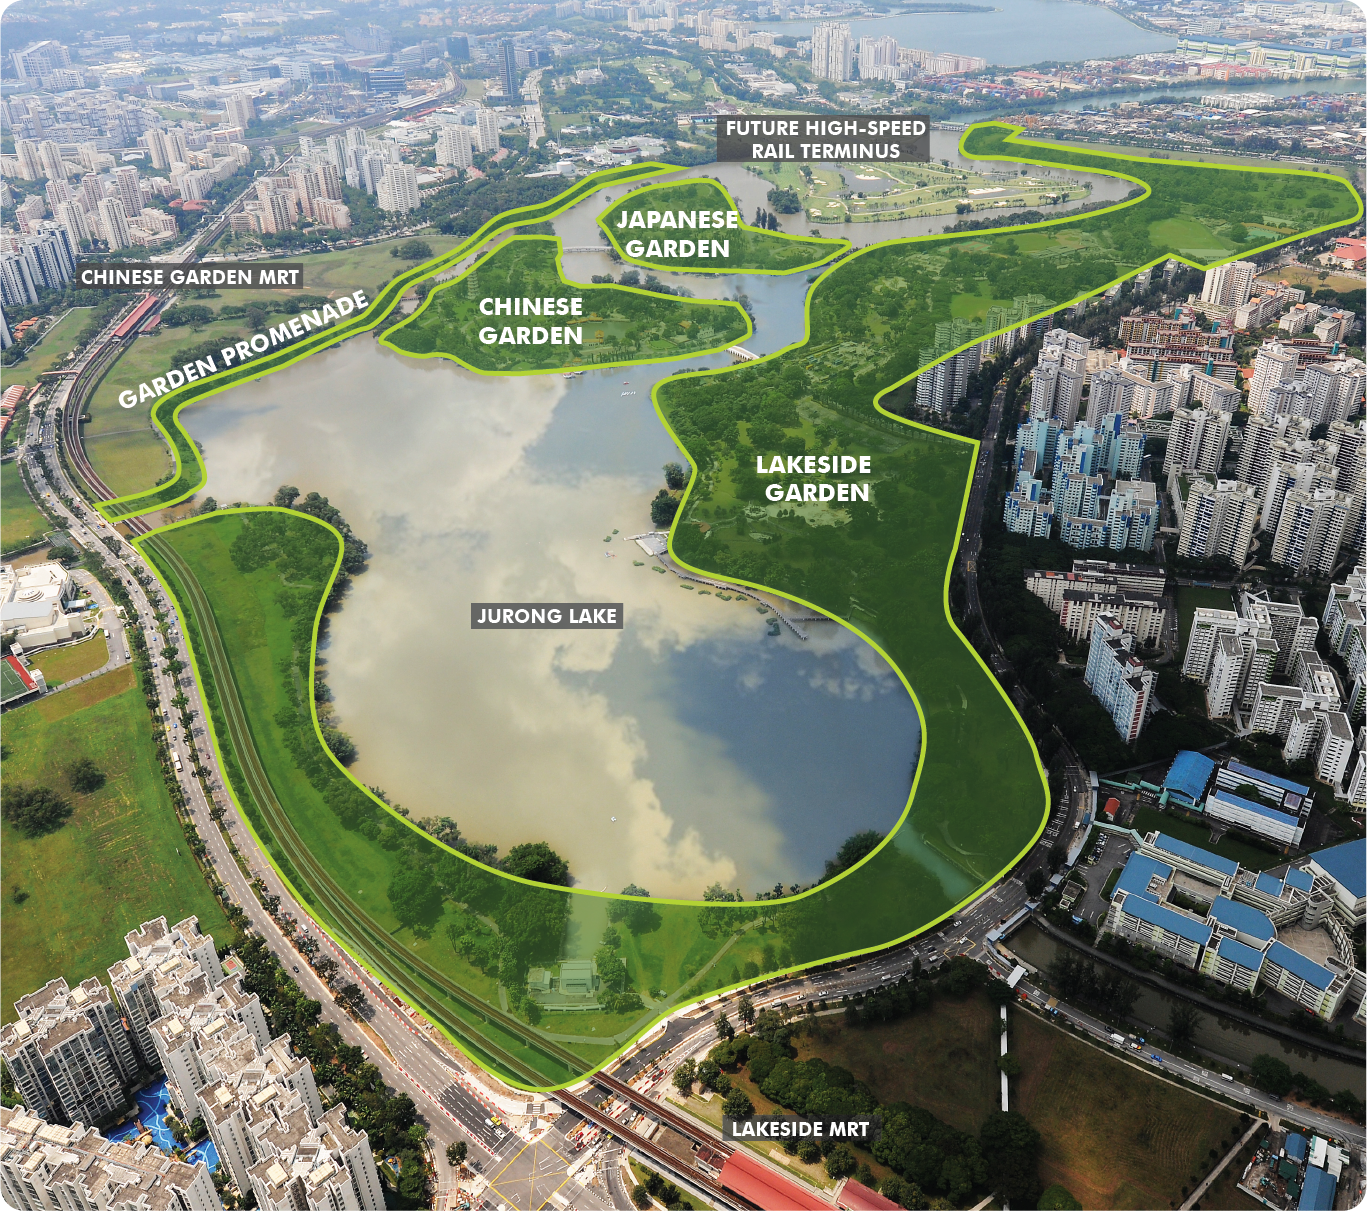 Bird's eye view of Jurong Lake Gardens